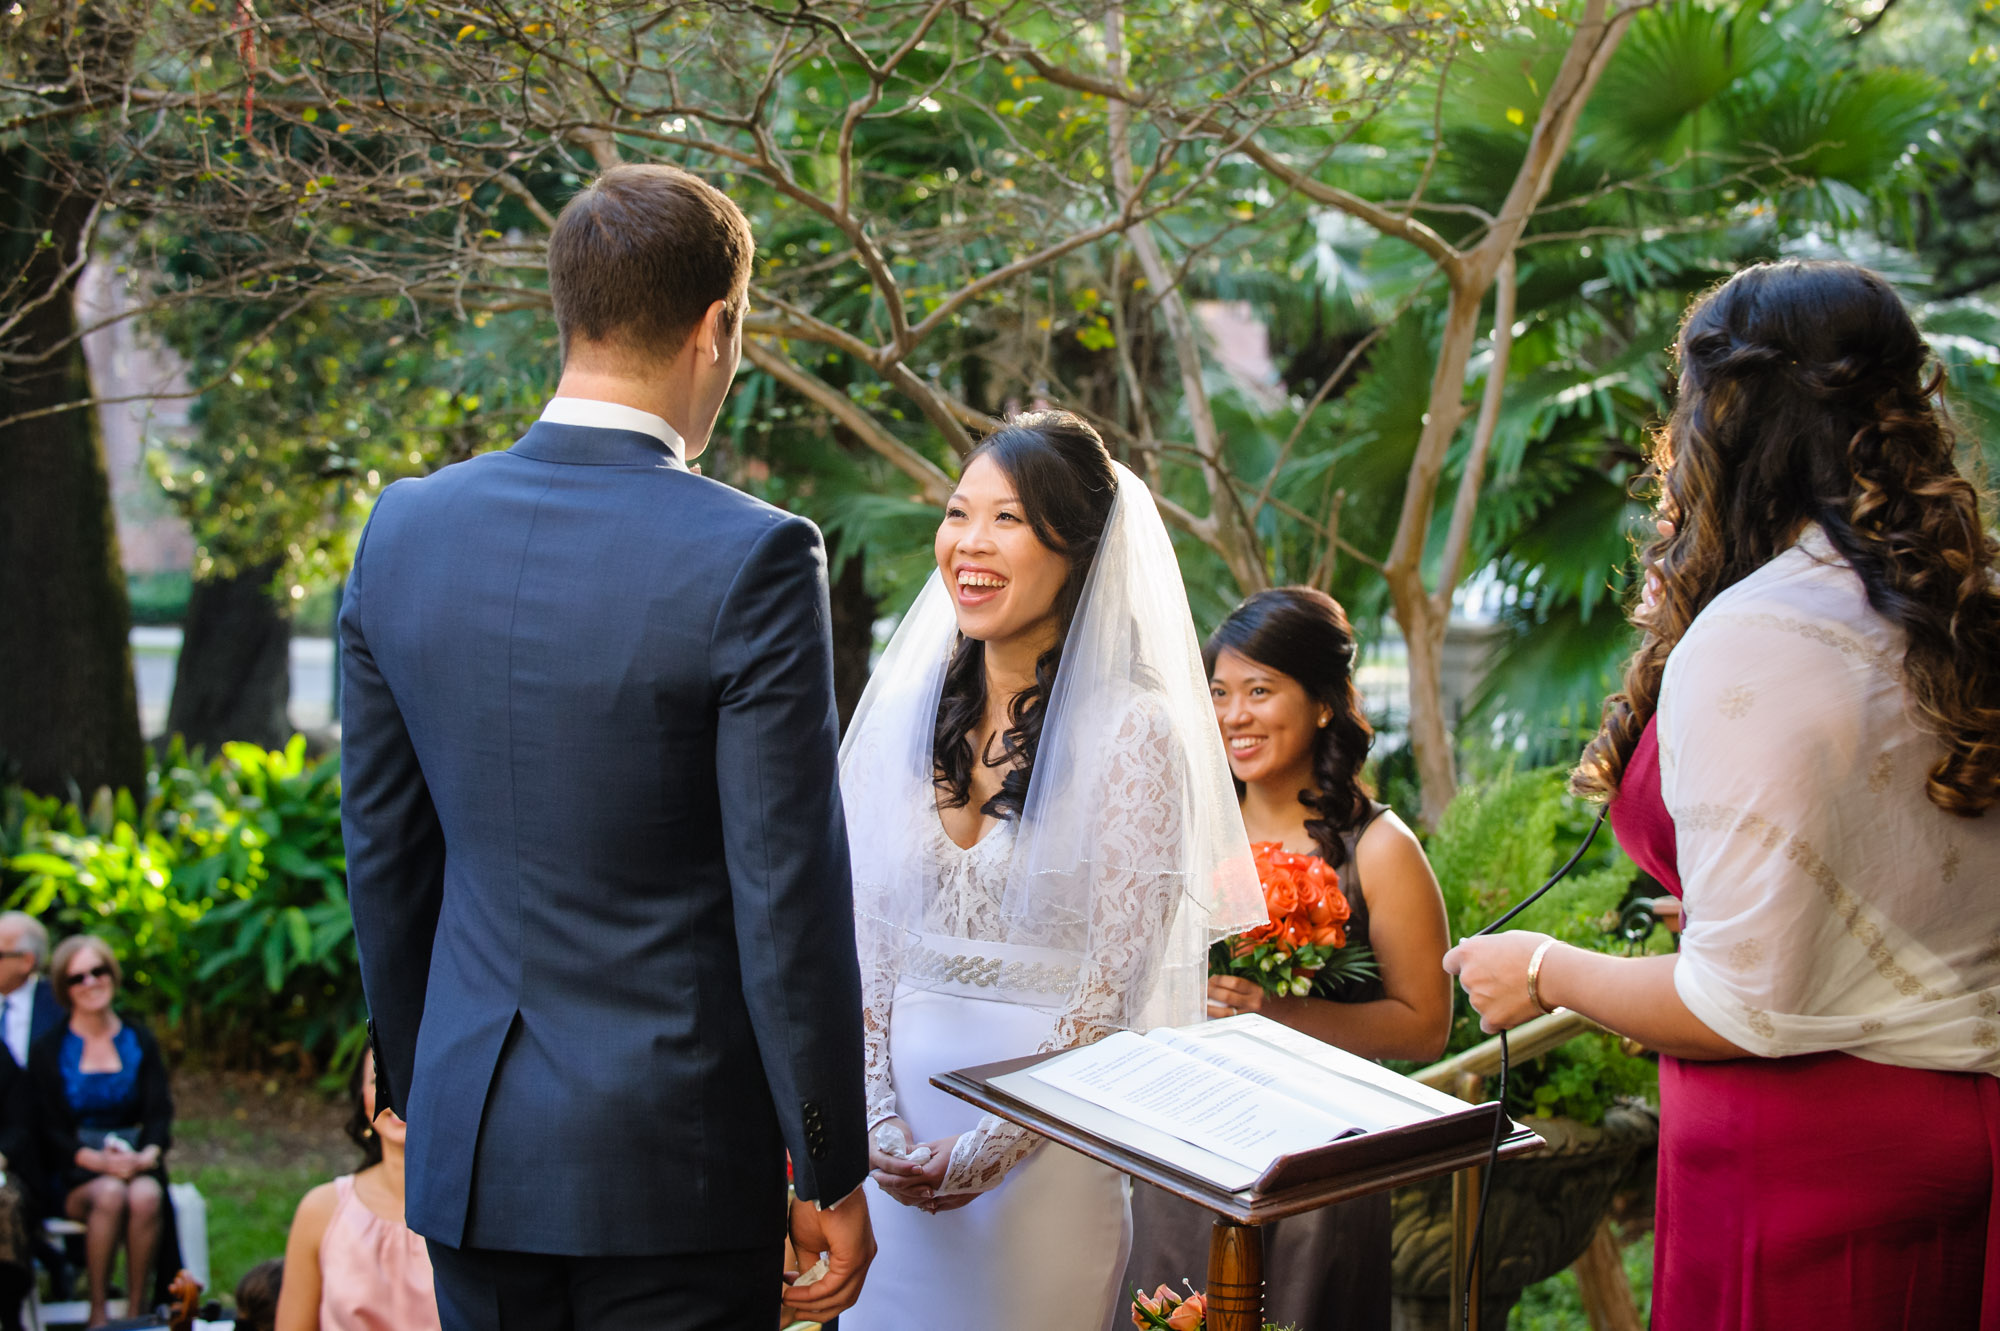 Wedding ceremony at Columns Hotel, photographed by Scott Myers